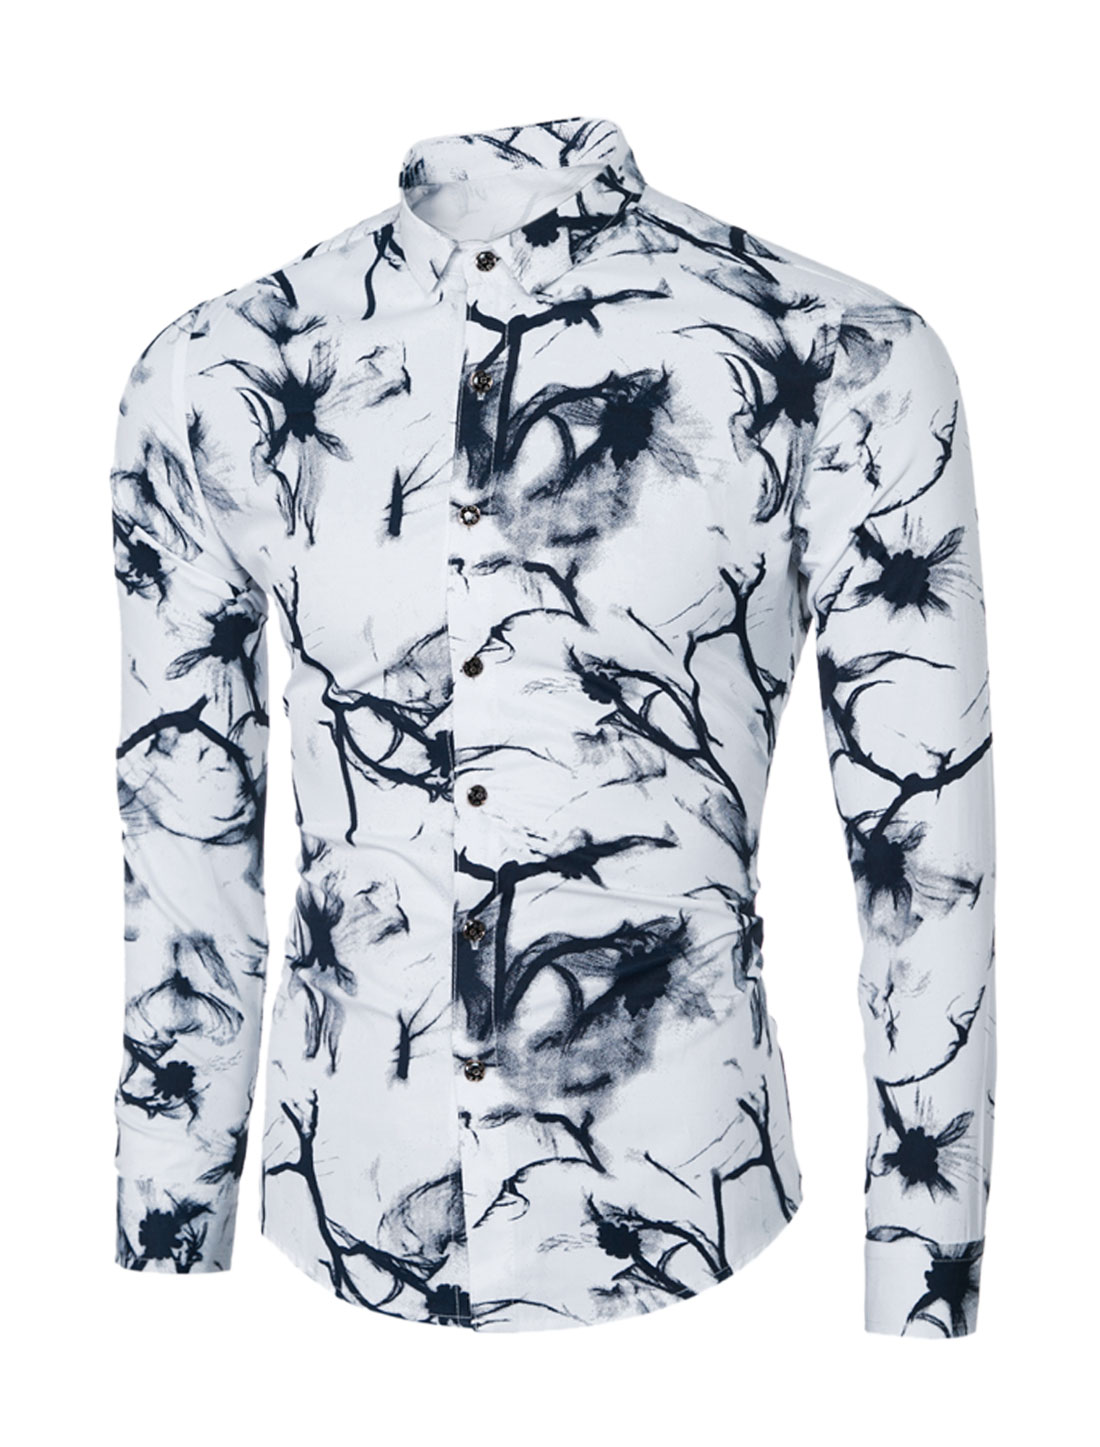 Men Point Collar Long Sleeves Novelty Prints Button Down Shirt Black M